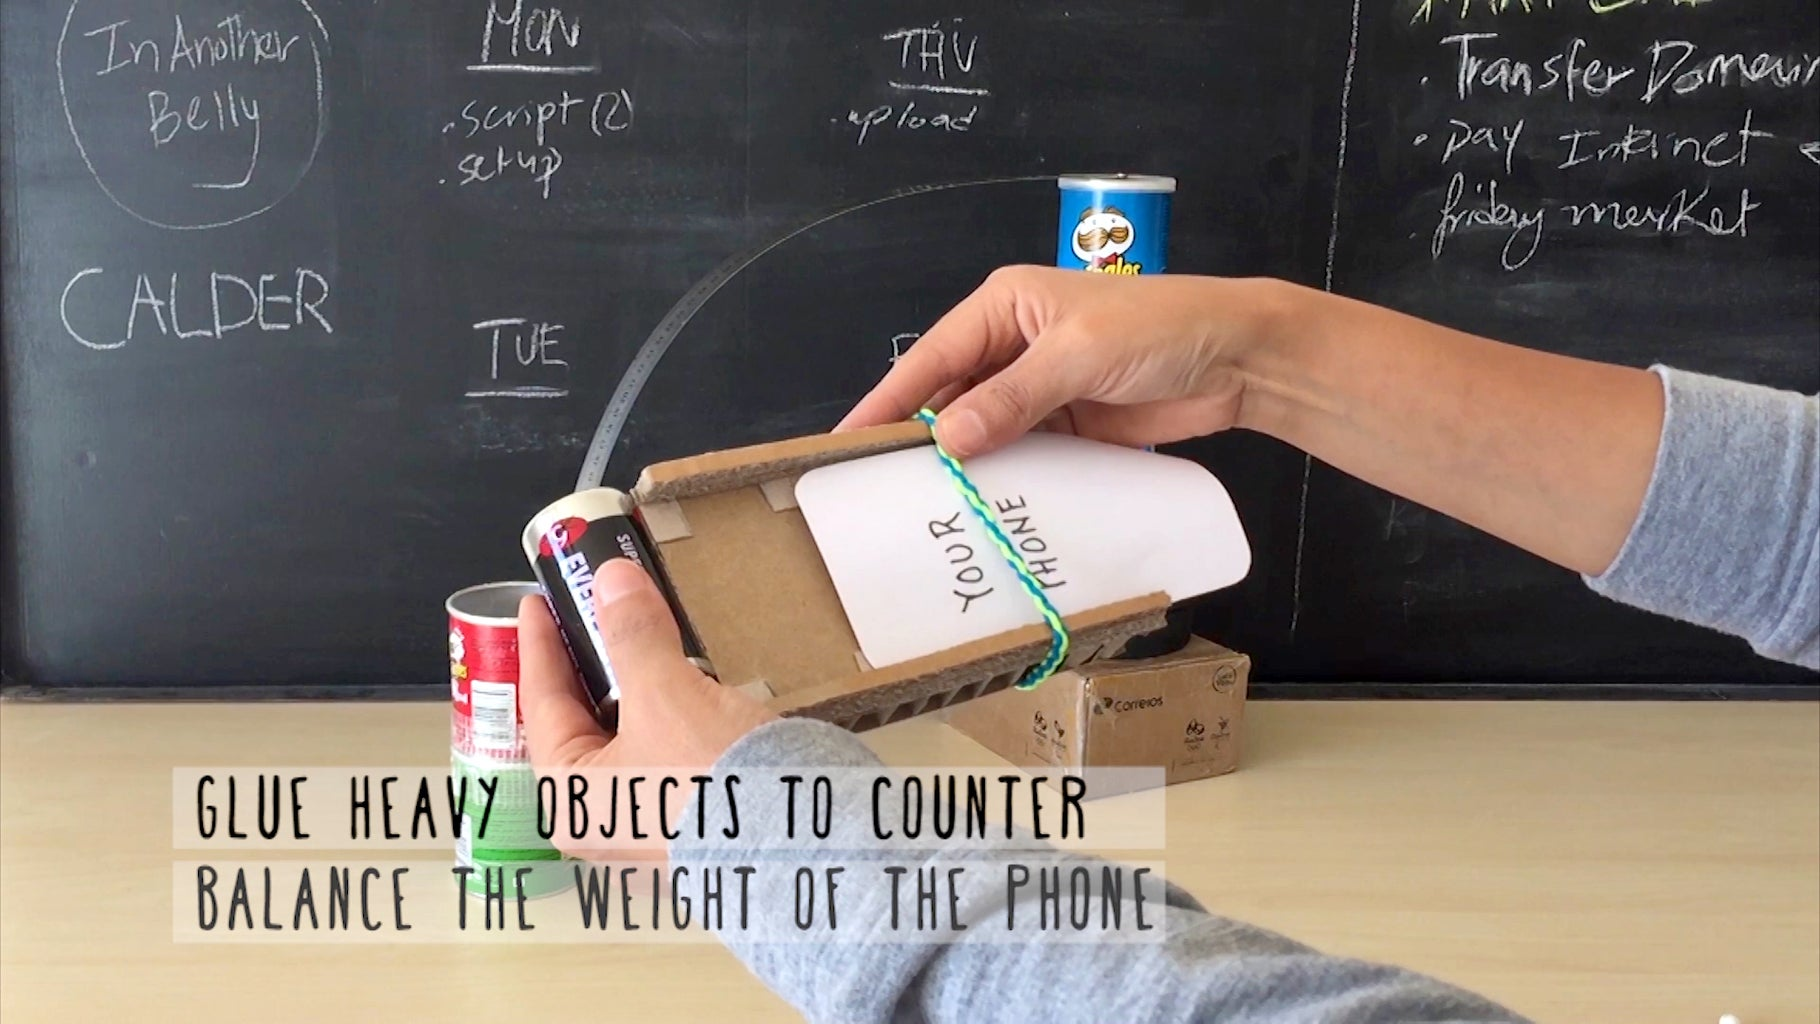 Counter Balance the Weight of the Phone